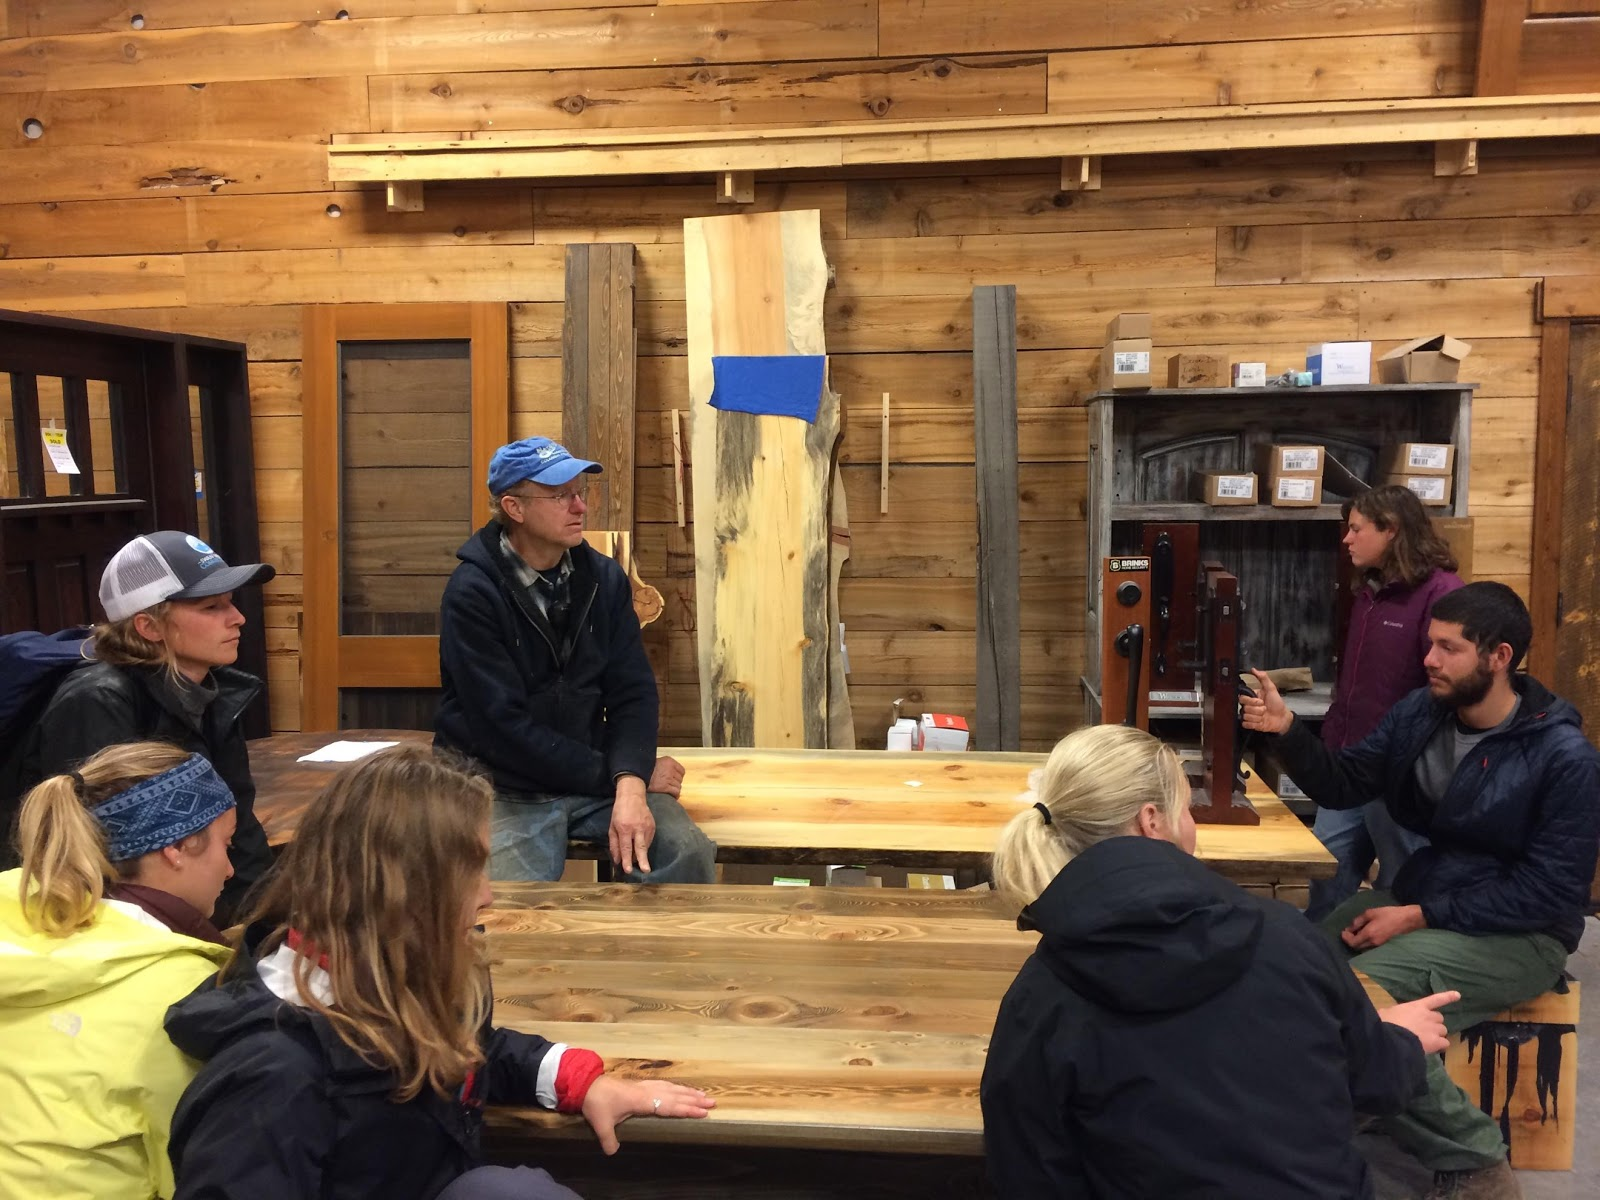 Seated around hand crafted tables made in the door shop at RBM, students listened to Ben Thompson discuss RBM's practices and efforts to reduce waste at the mill. Photo by Meredith Fraser.